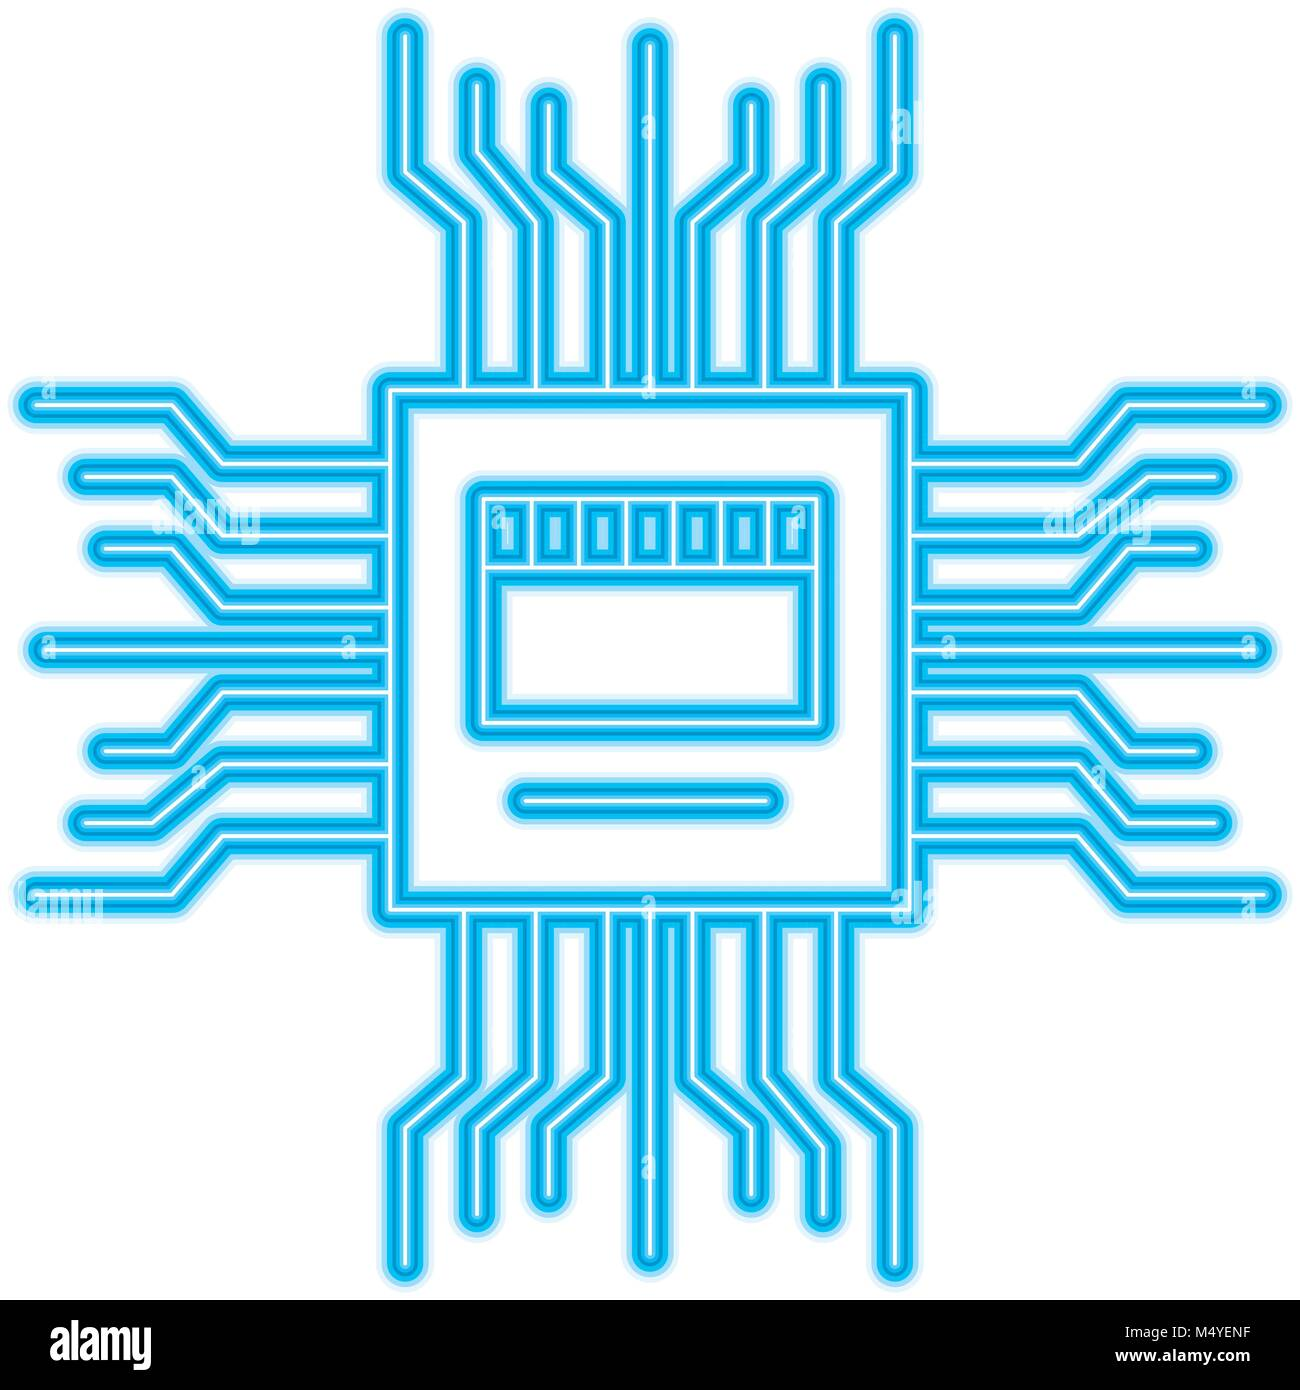 motherboard circuit high tech electric hardware icon stock vector image art alamy https www alamy com stock photo motherboard circuit high tech electric hardware icon 175166587 html